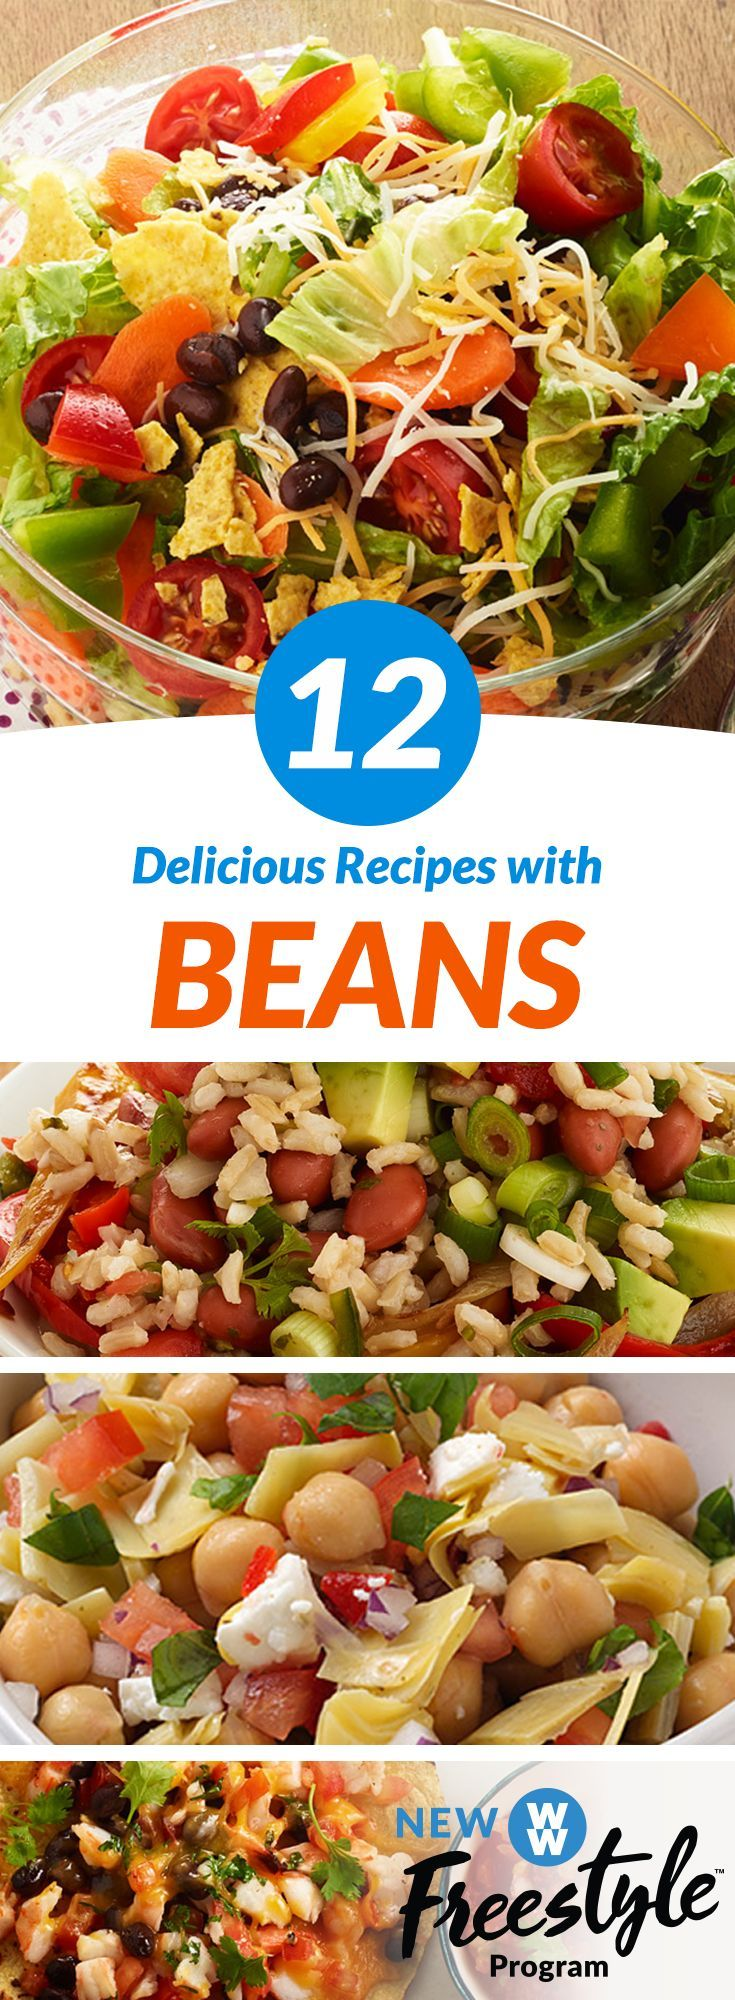 12 Bean Recipes under 3 SmartPoints   These delicious bean filled dishes are about to be your new go-to meals & snacks– especially now that legumes are 0 SmartPoints on WW Freestyle!